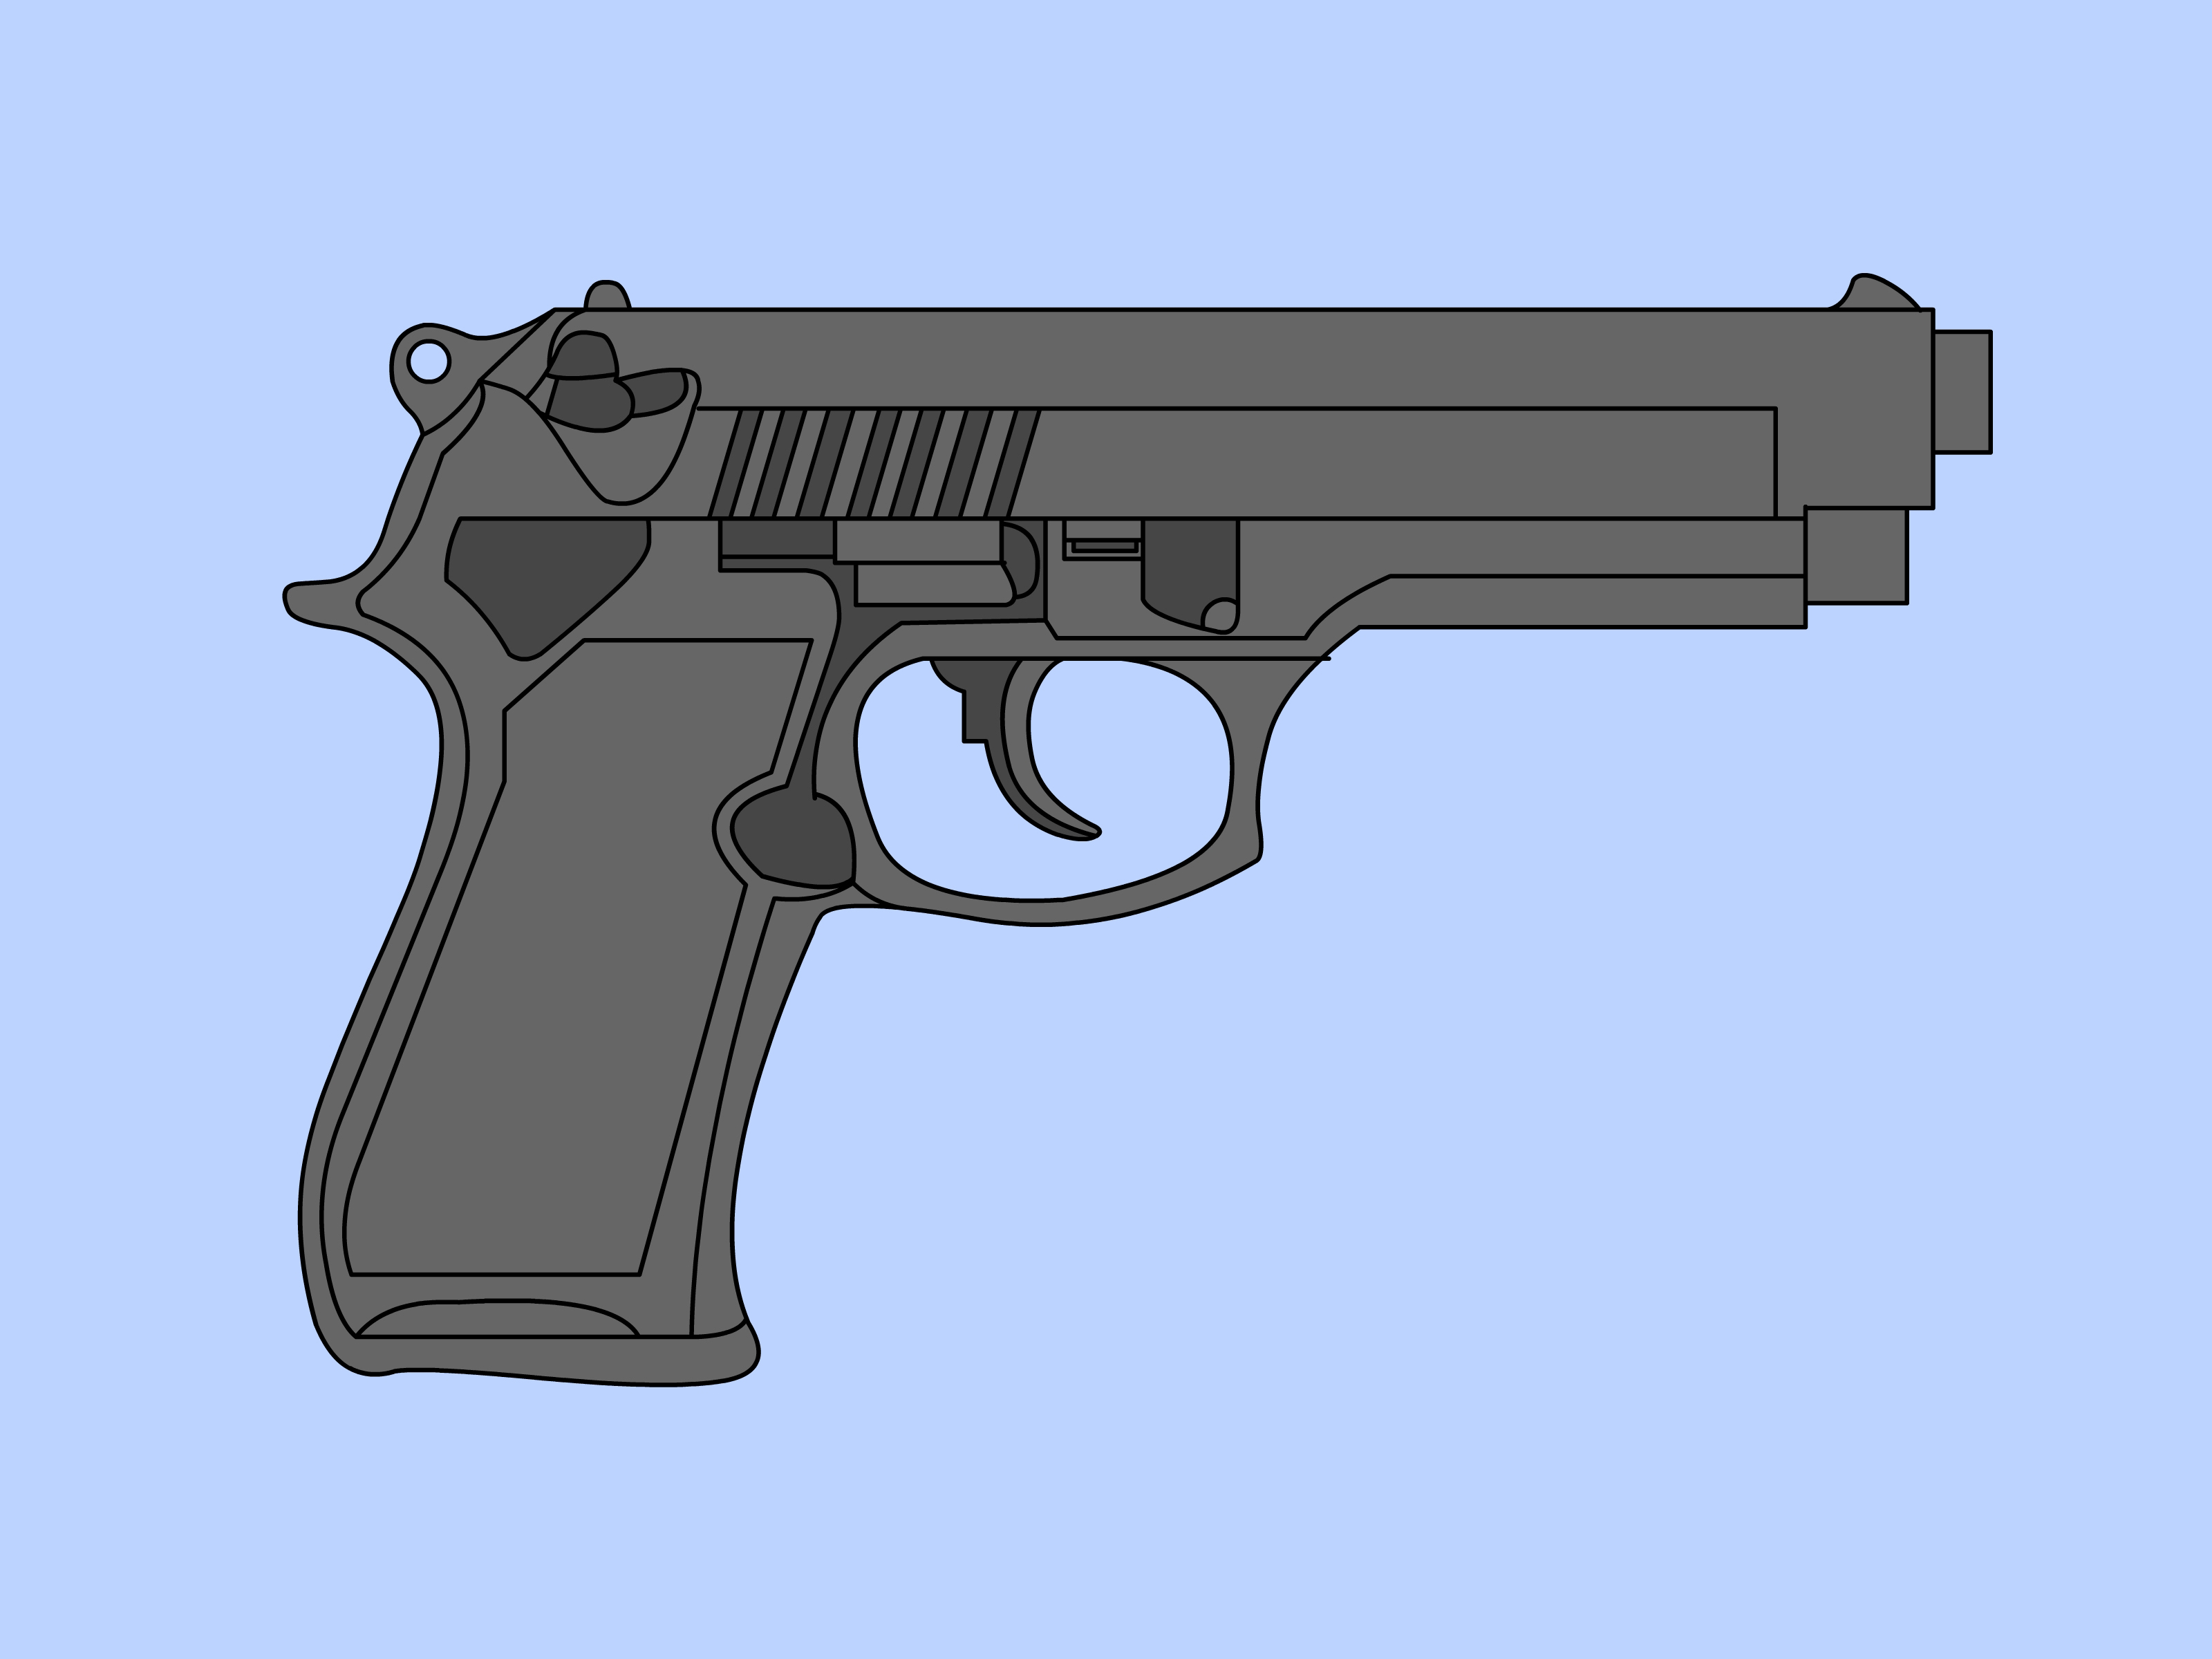 Drawn weapon hand gun Gun: 6 Pictures) a wikiHow